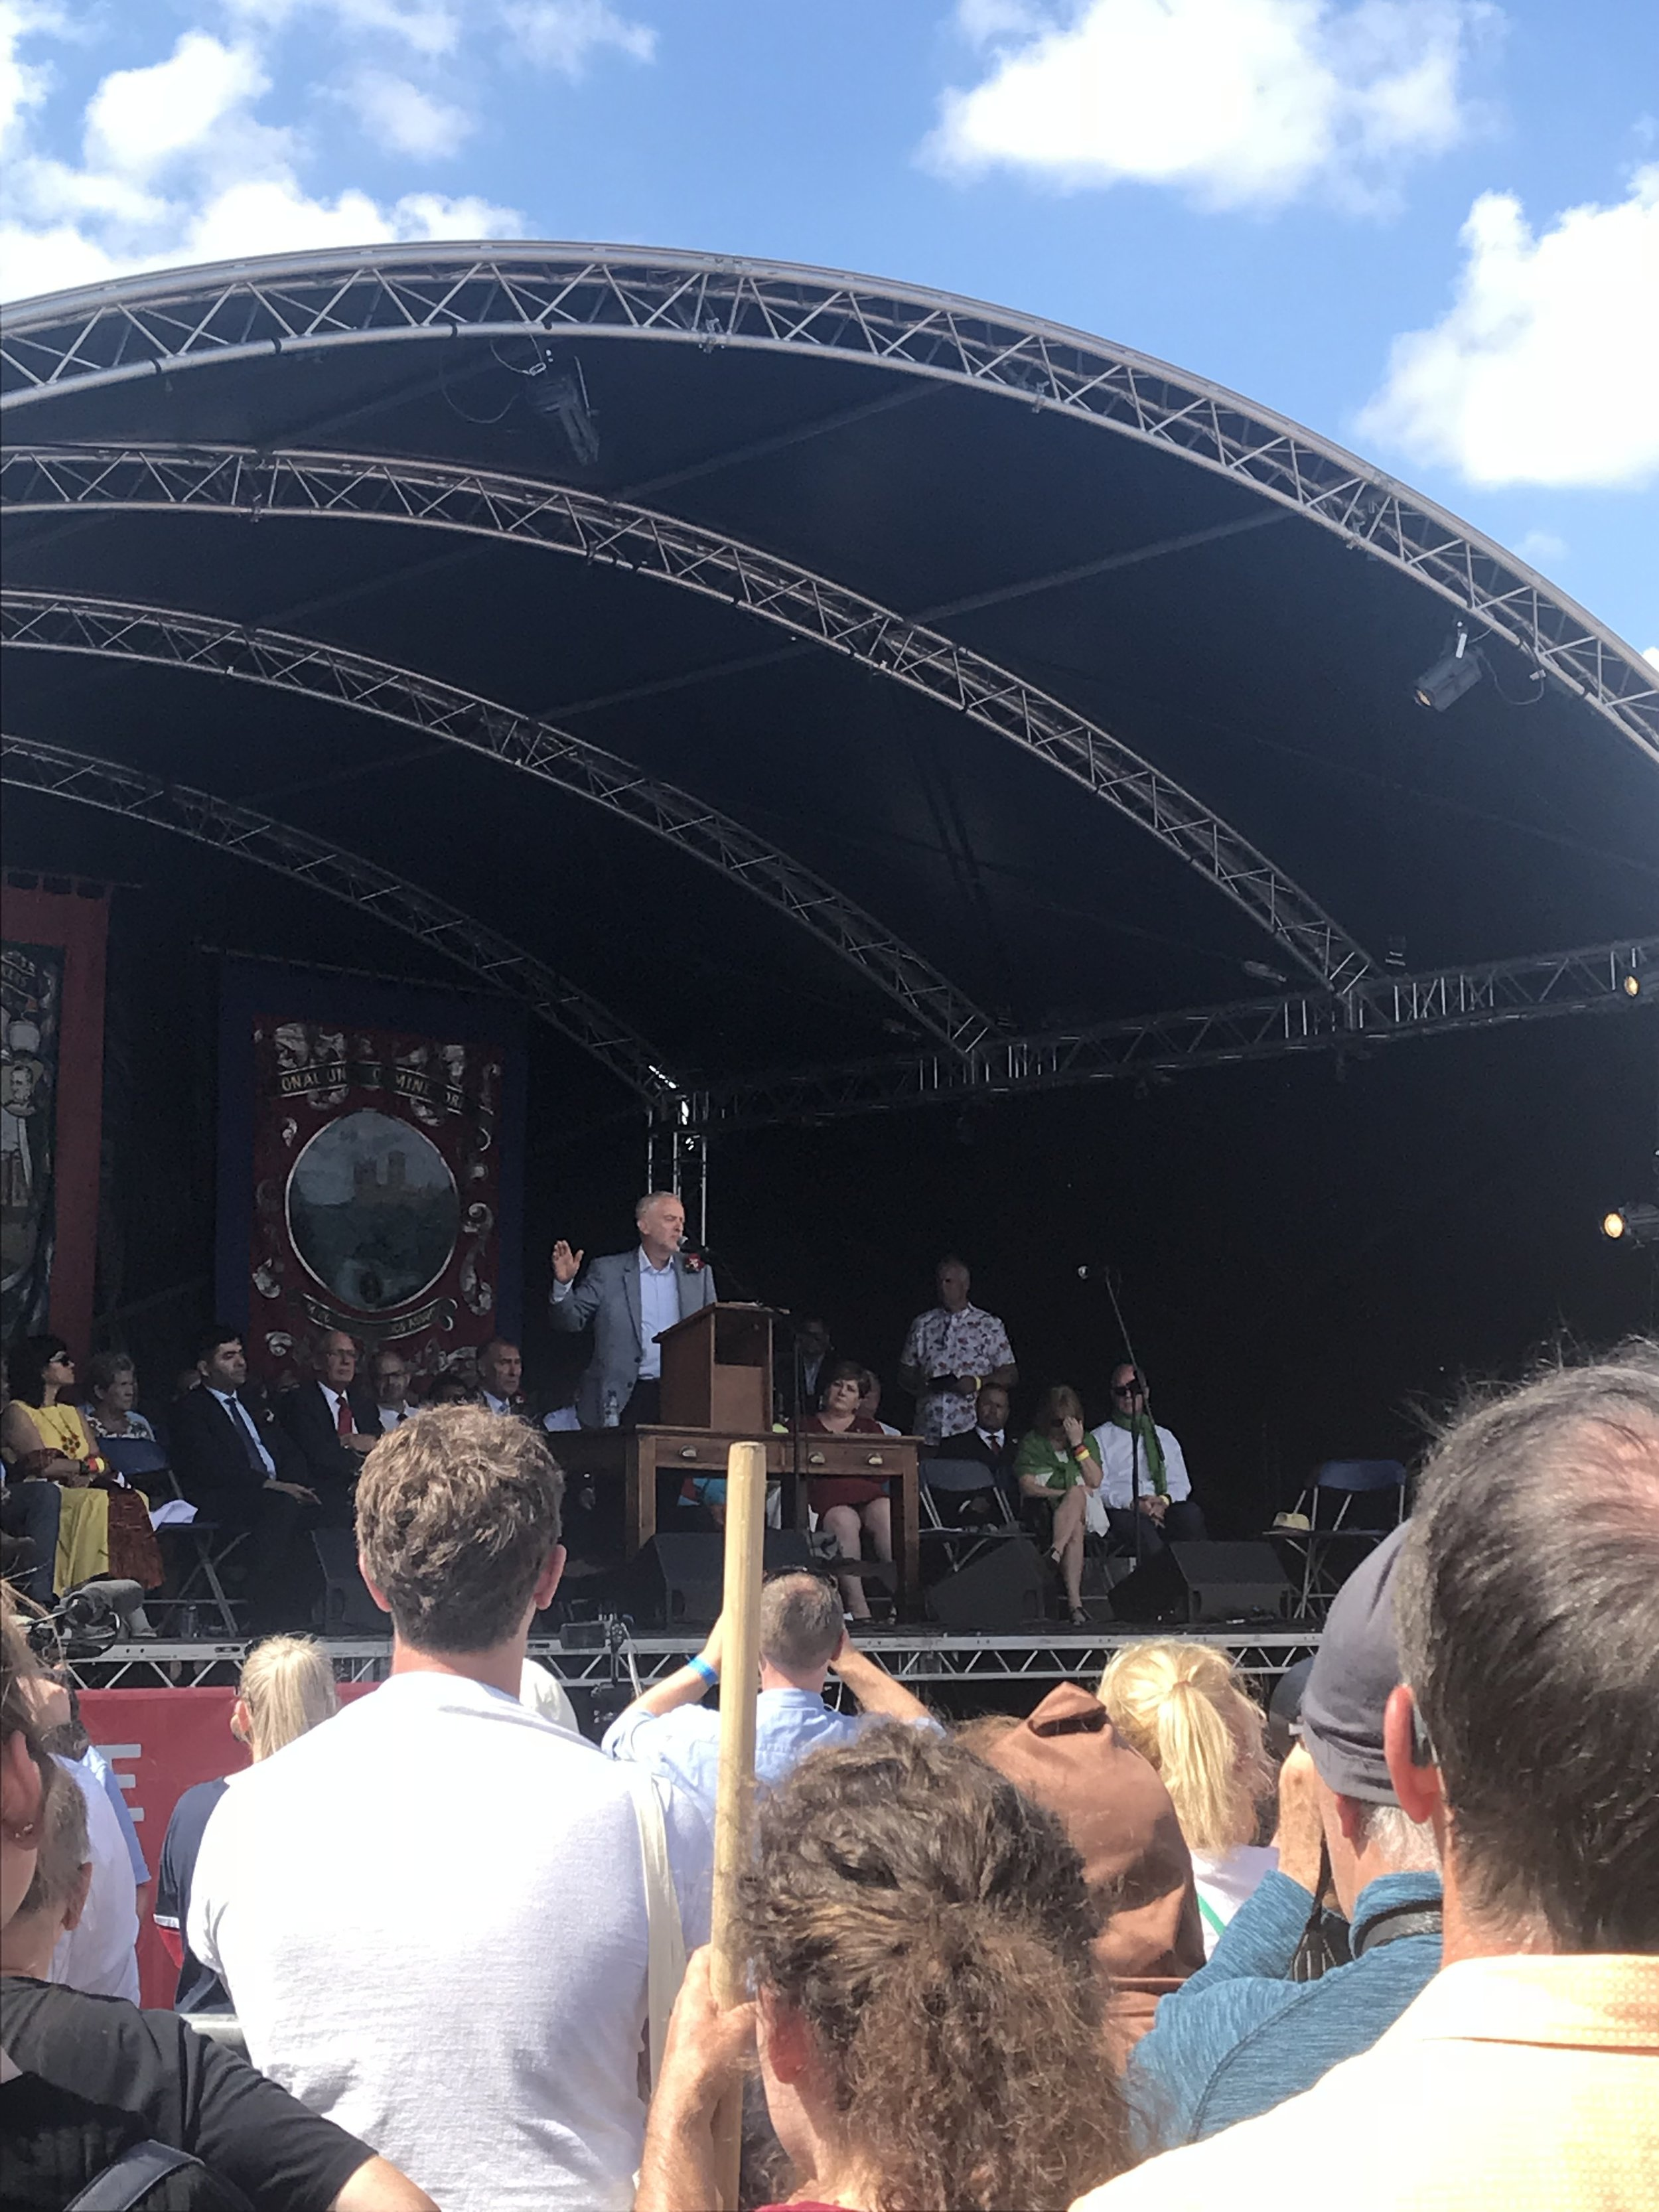 Jeremy Corbyn dressing the crowds from the new stage